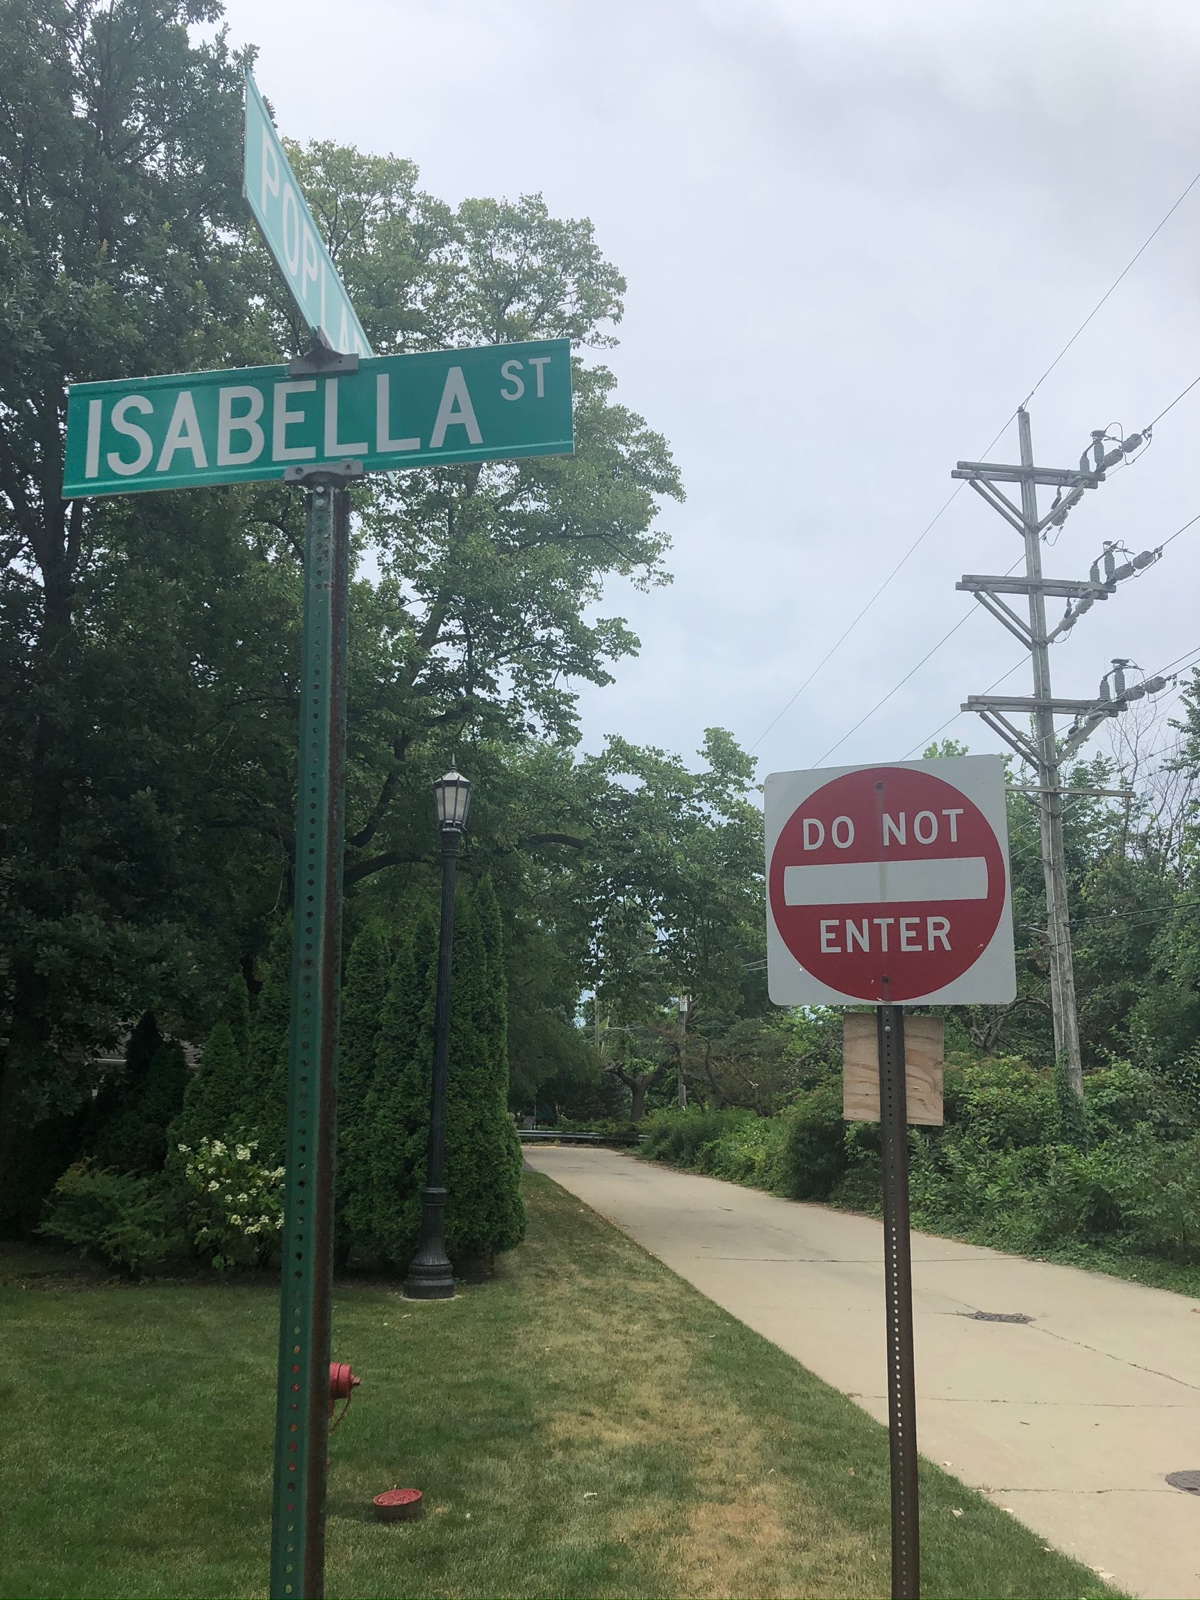 Where to bike when the trail ends? Evanston Transit Alliance is striving to extend GB Trail. Join us?